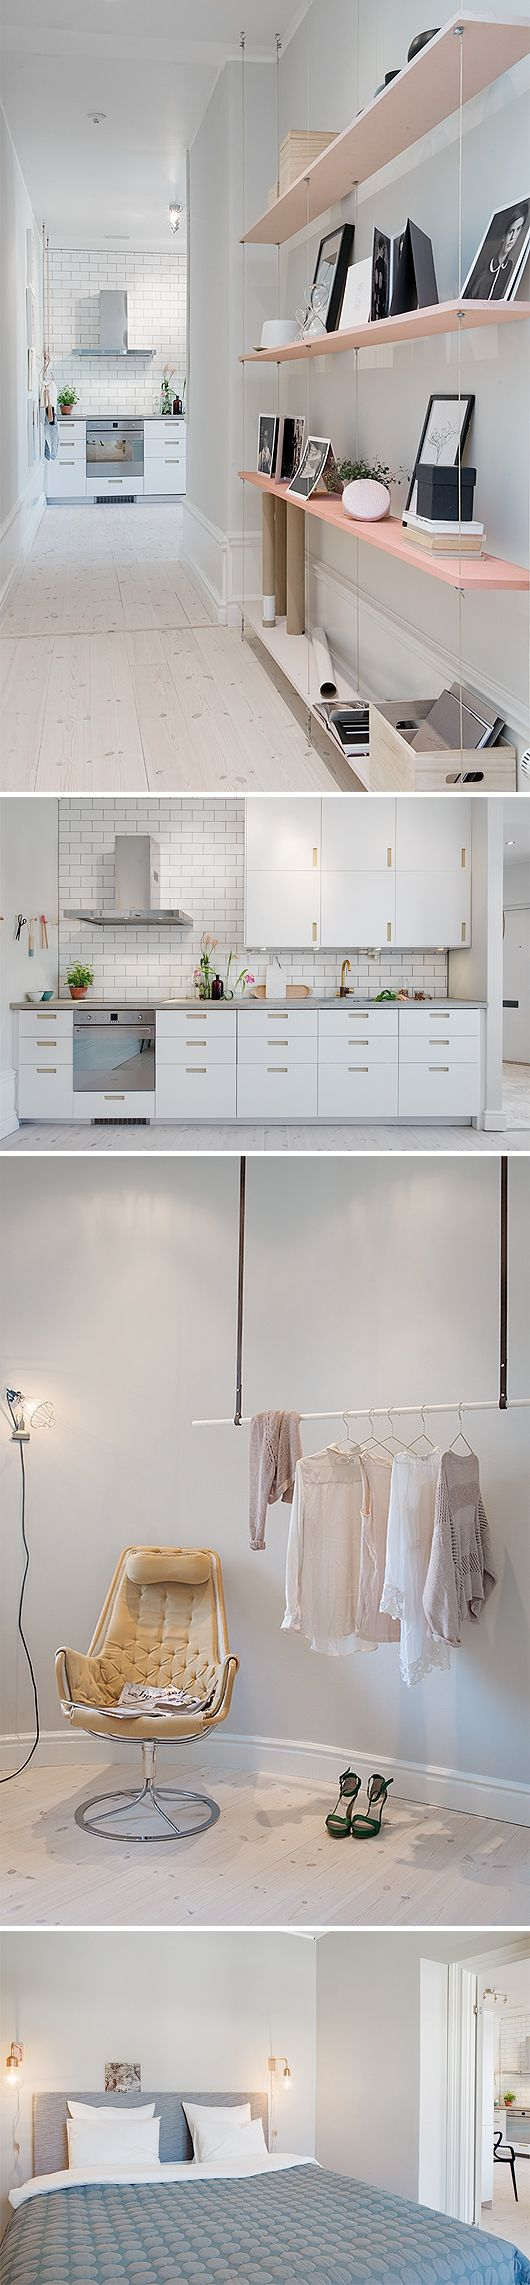 Home Decorating Diy Projects Trendenser Love The Clean Lines Here And This Blog Is Great For